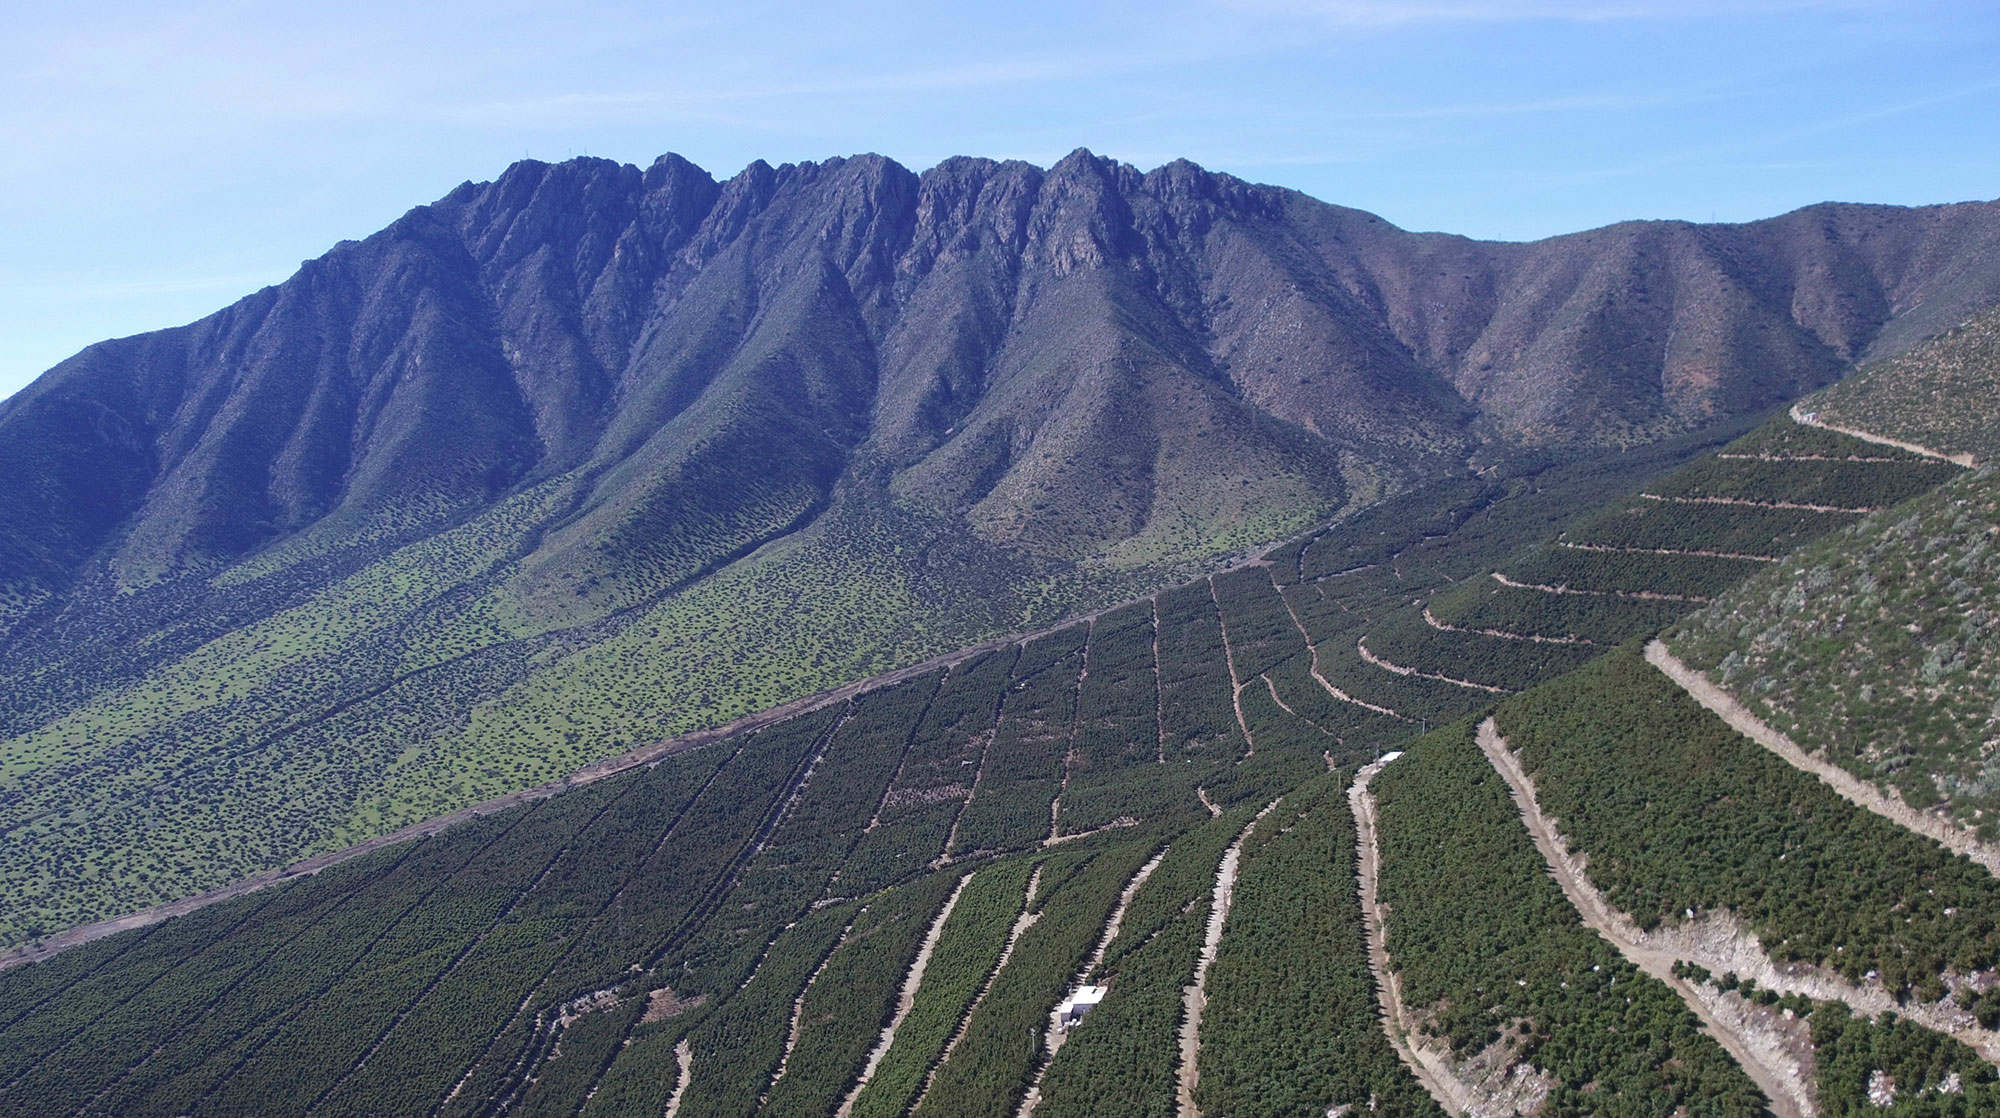 avocado orchards on hilly slopes in San Felipe Valley